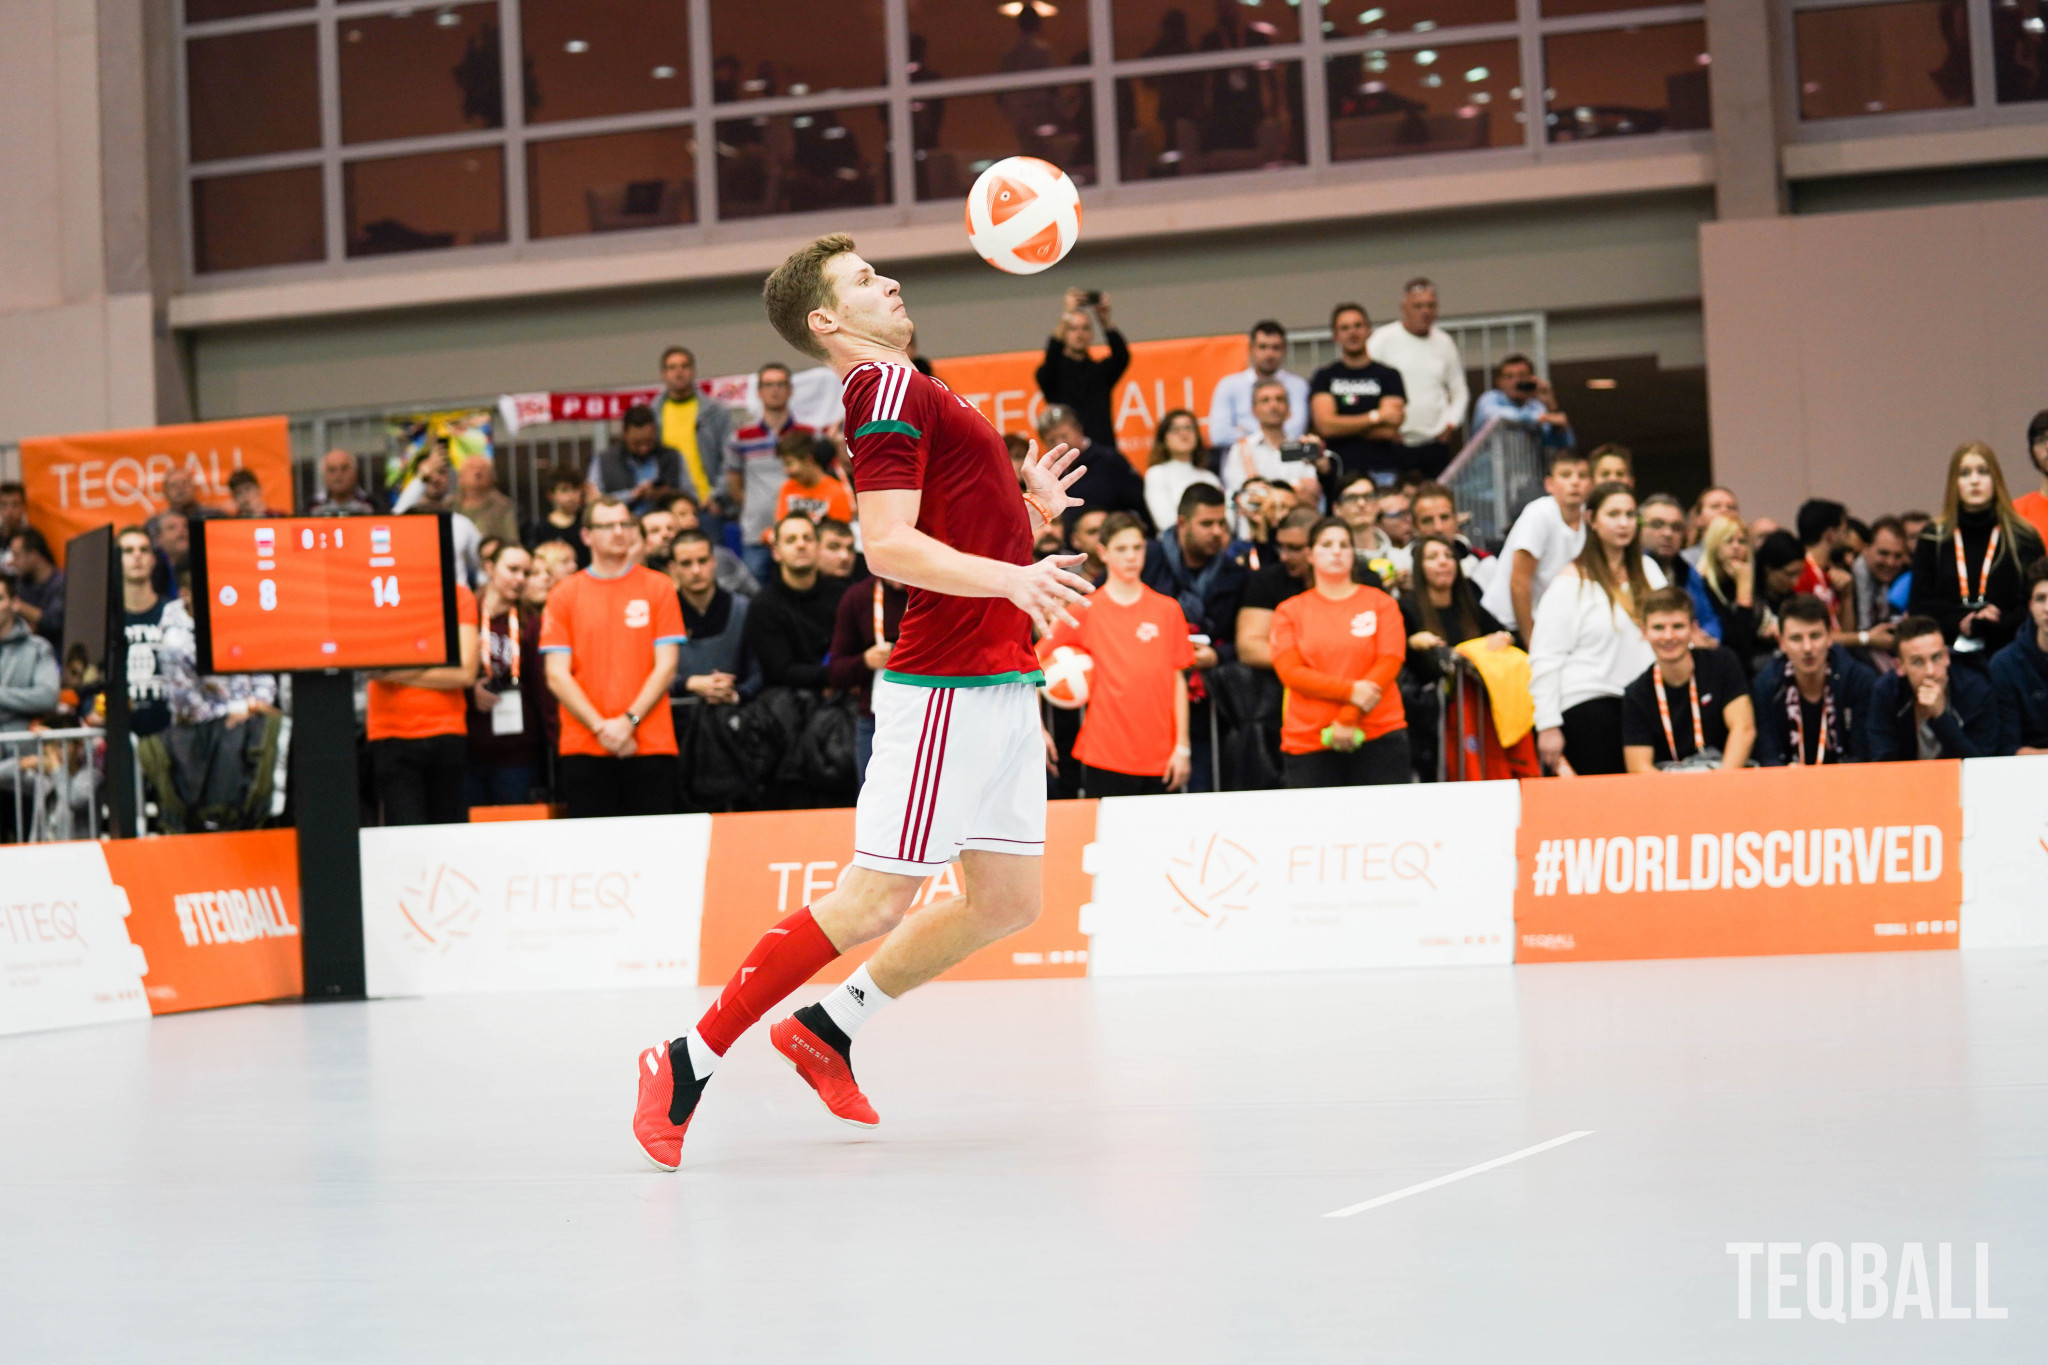 Hungarian Ádám Blázsovics is ranked the number one teqball player in the world ©FITEQ